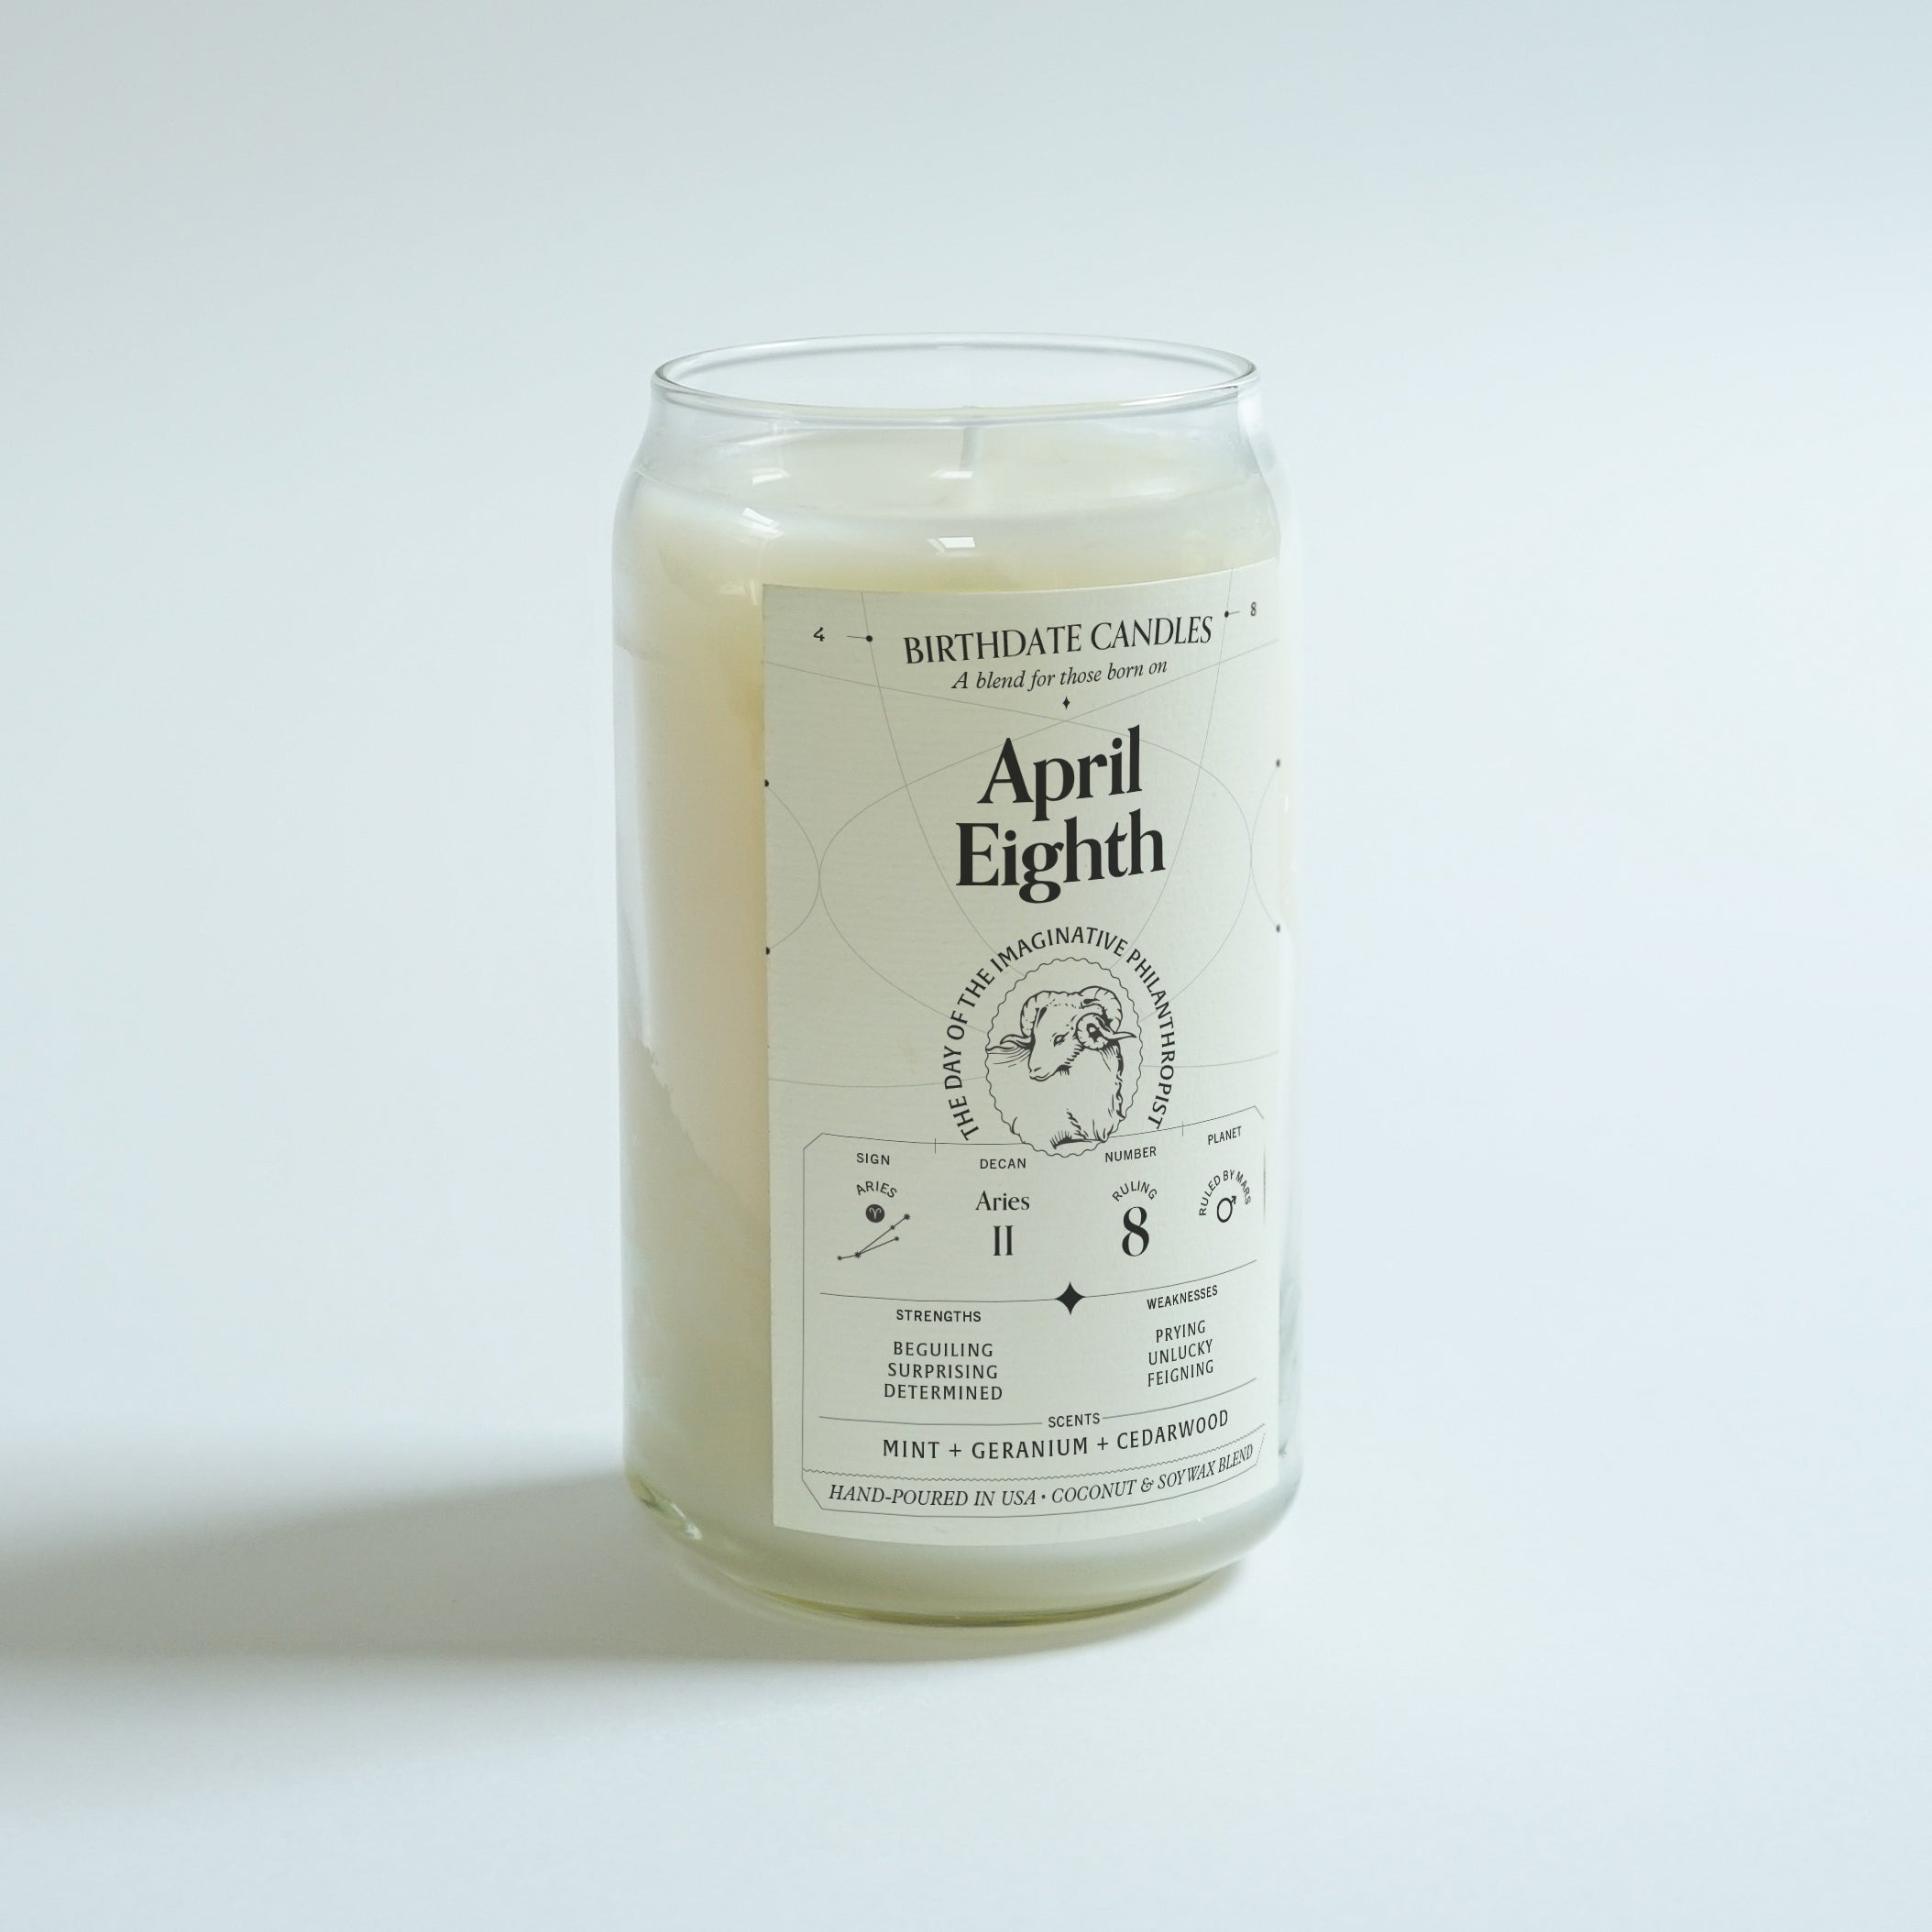 The April Eighth Candle